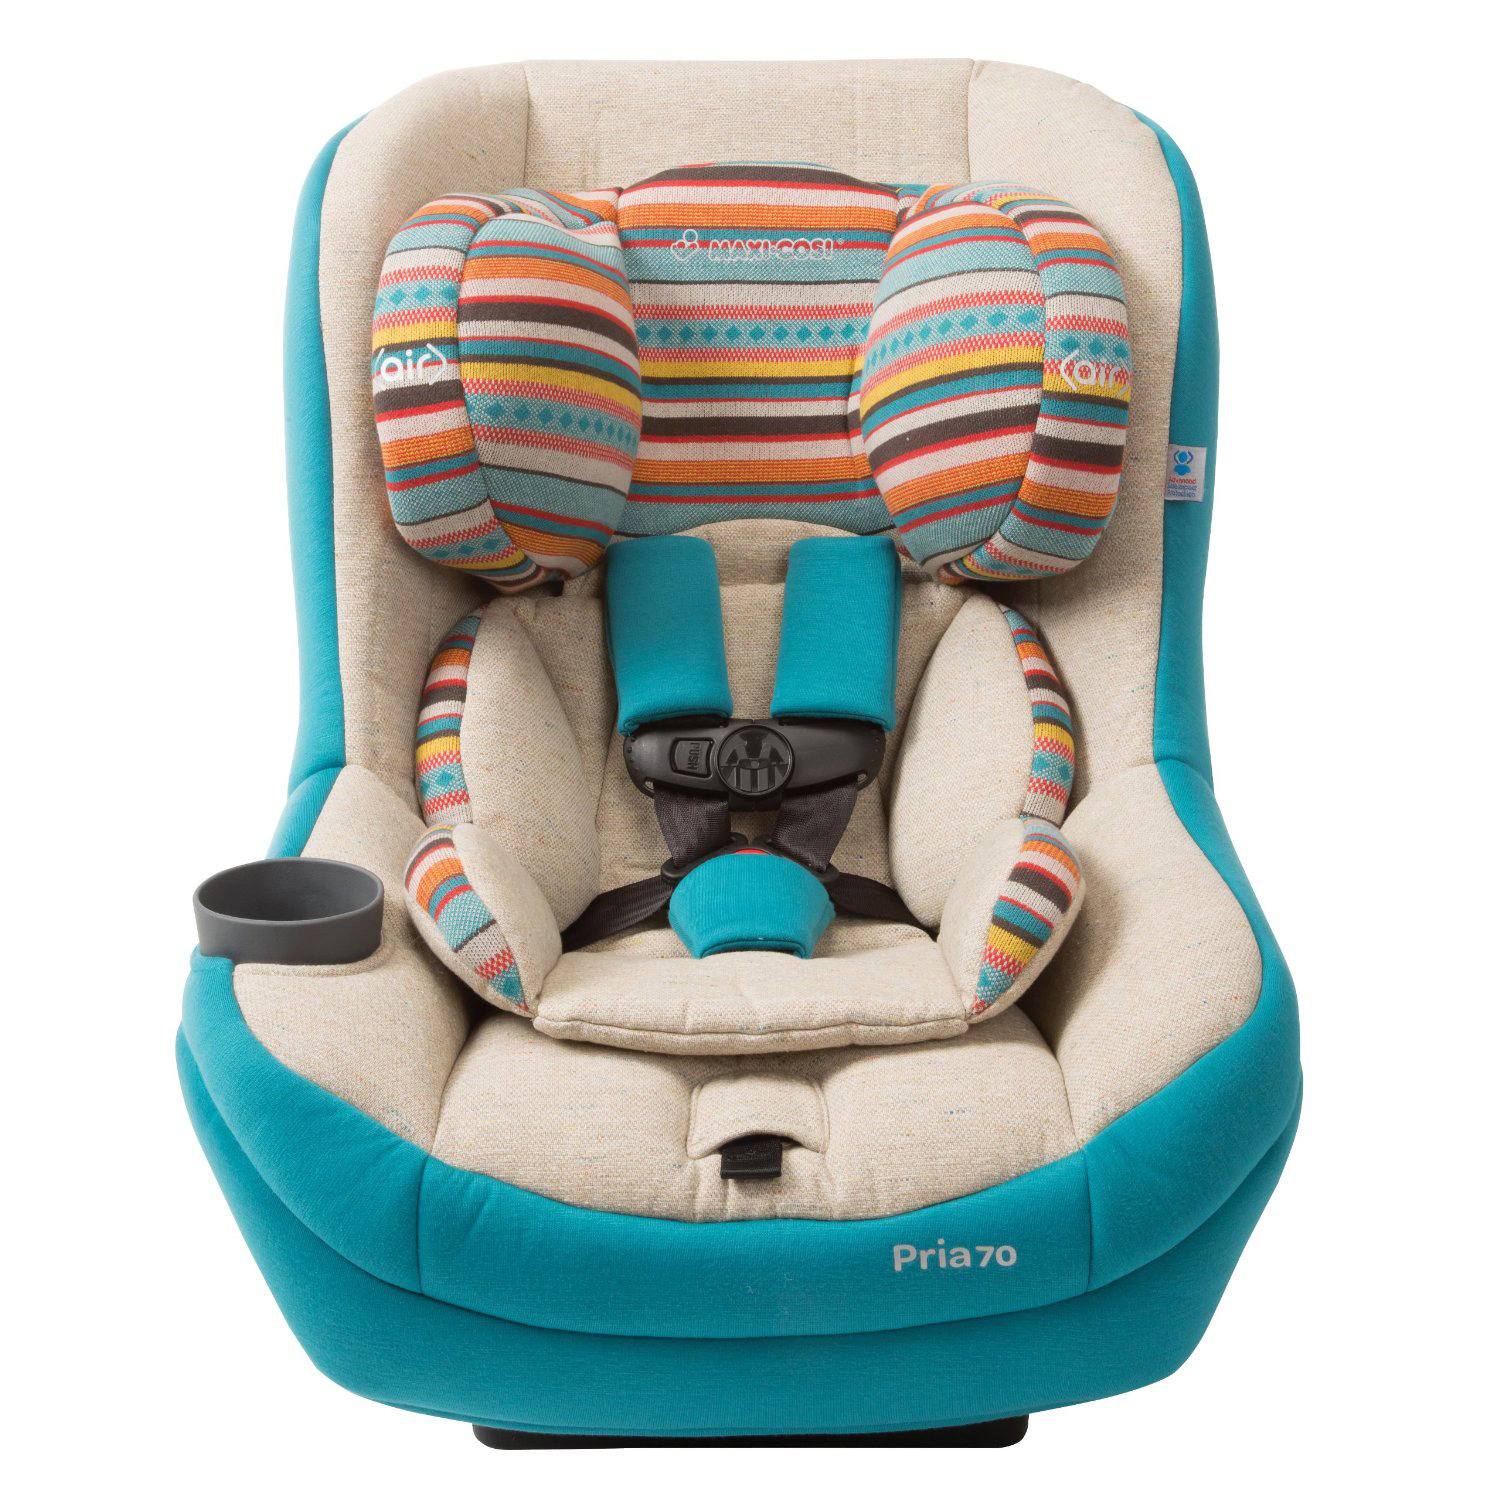 Maxi Cosi Car Seat Vs Peg Perego Maxi Cosi Pria 70 Vs Peg Perego Which Car Seat Will Hold